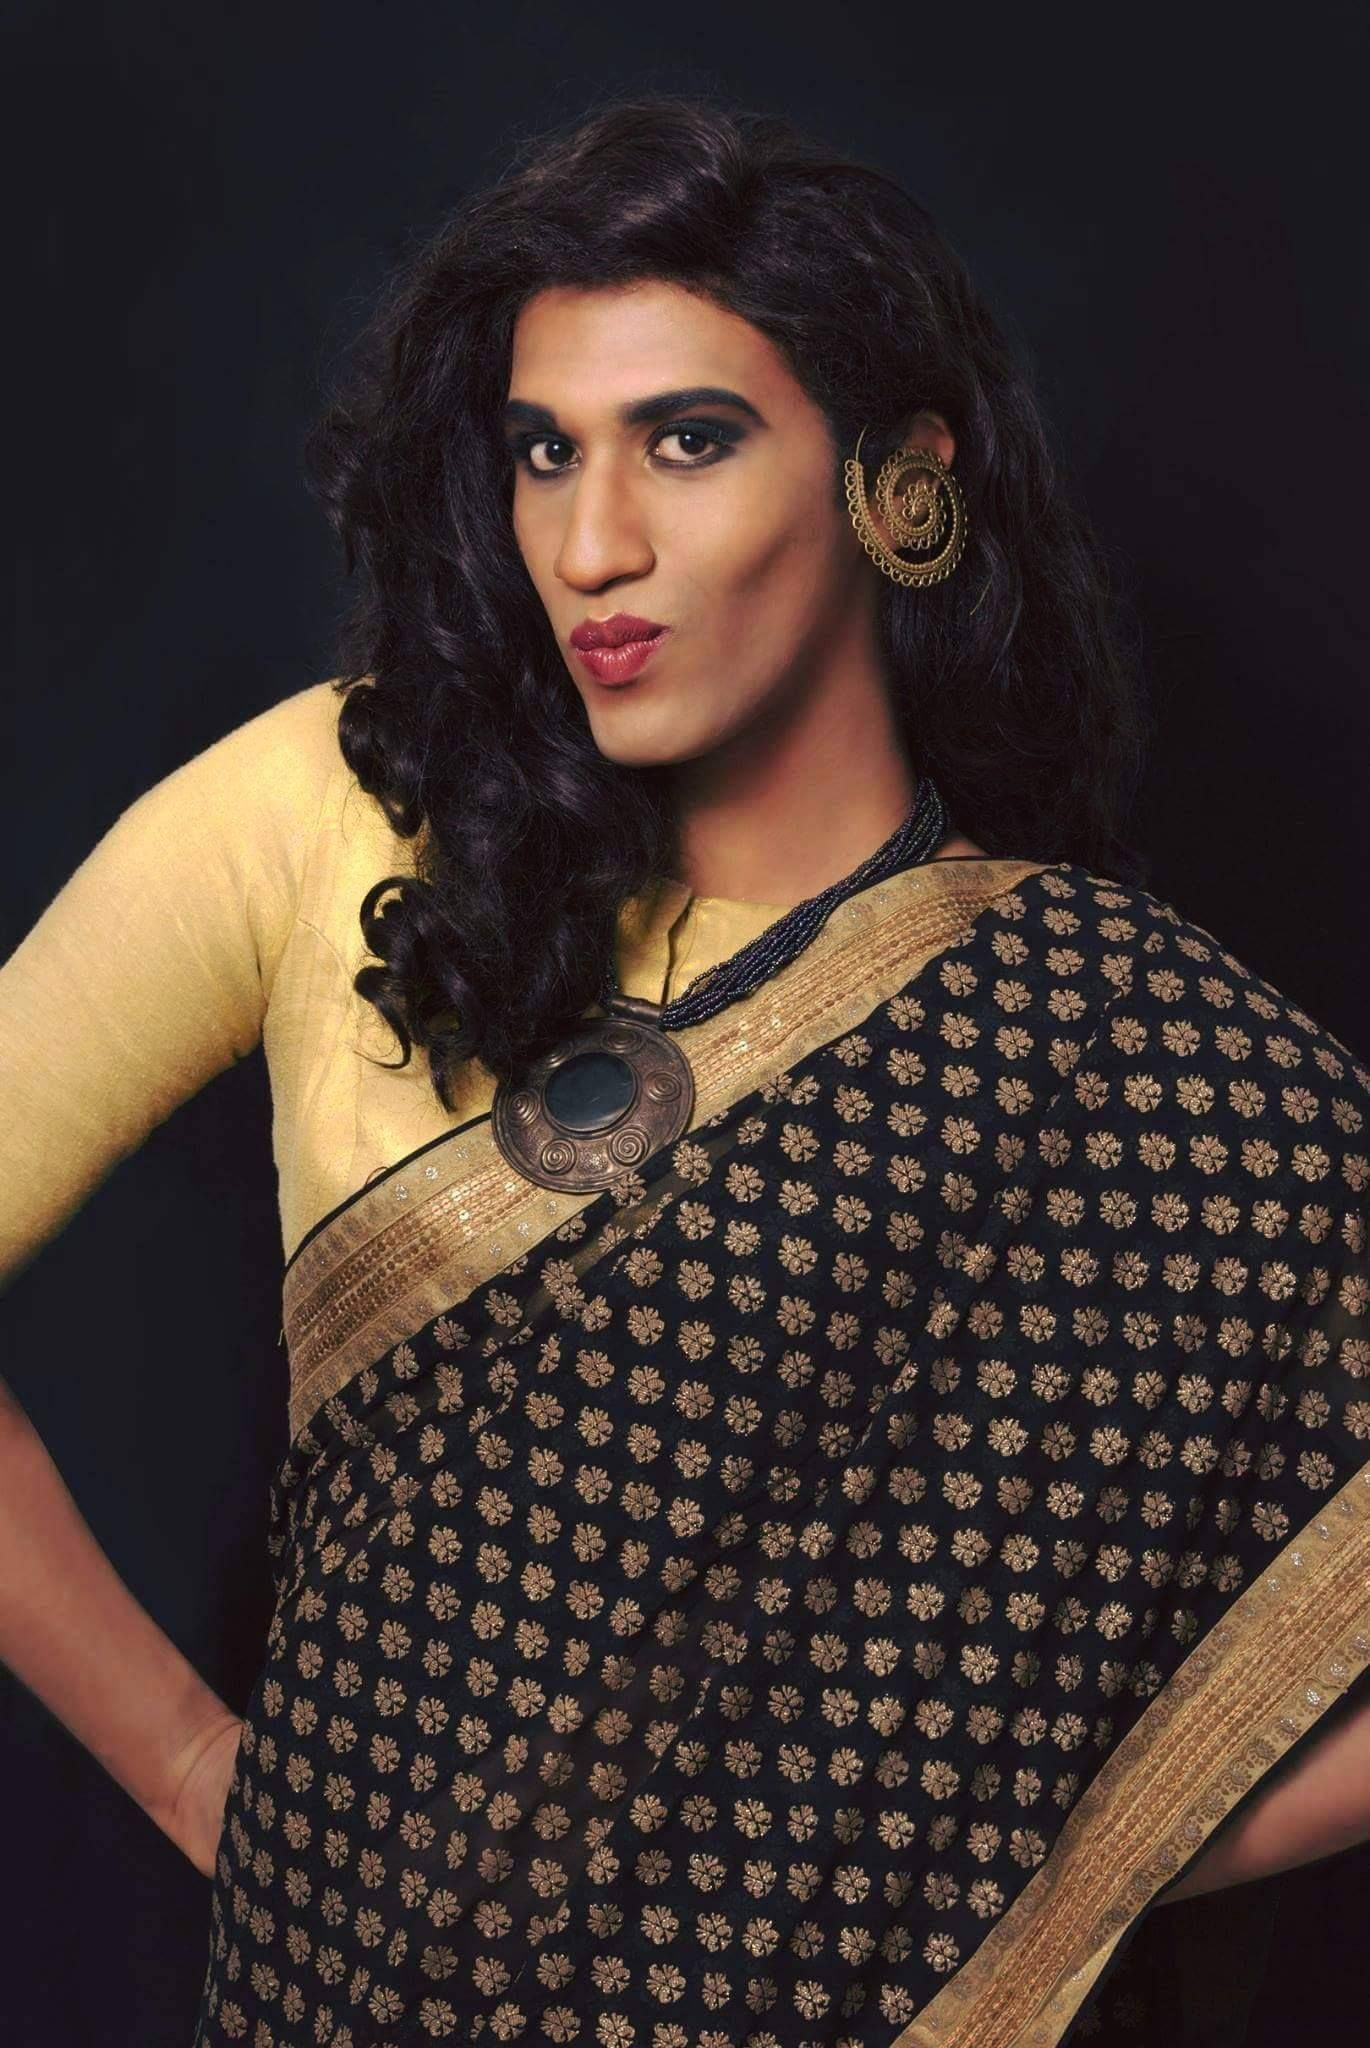 pinshivani on indian crossdresser | pinterest | sissy boys